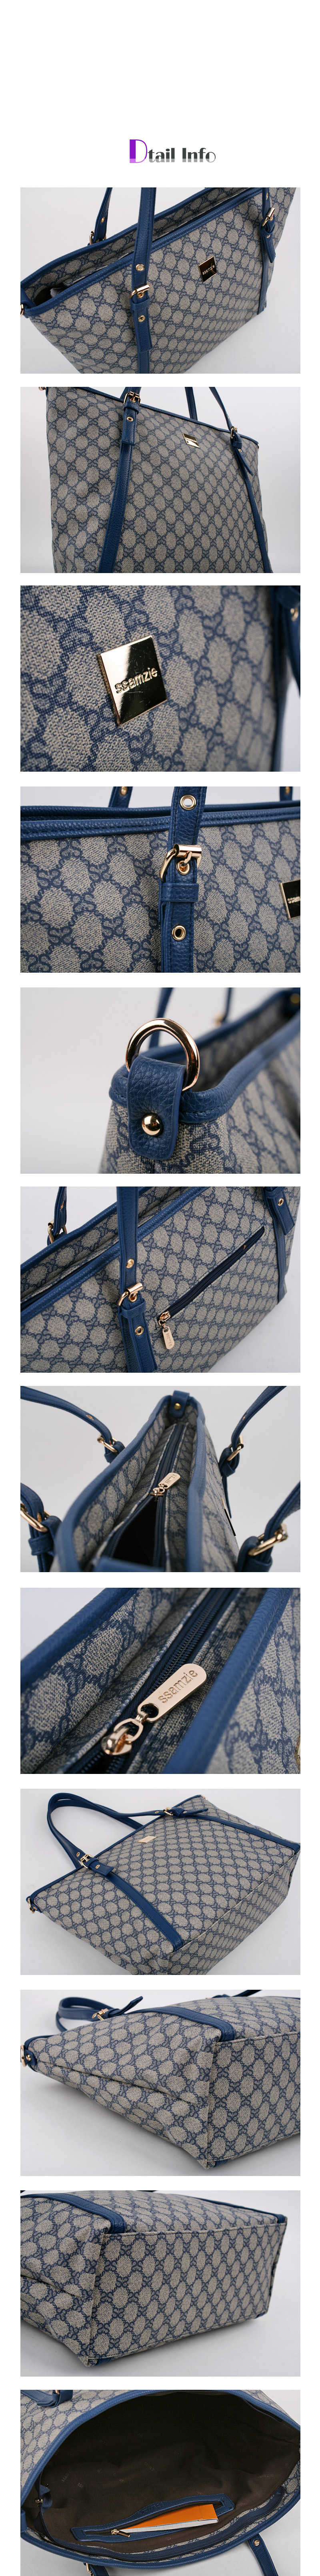 ssamzie handbag no.SSAMZIE-630view-1